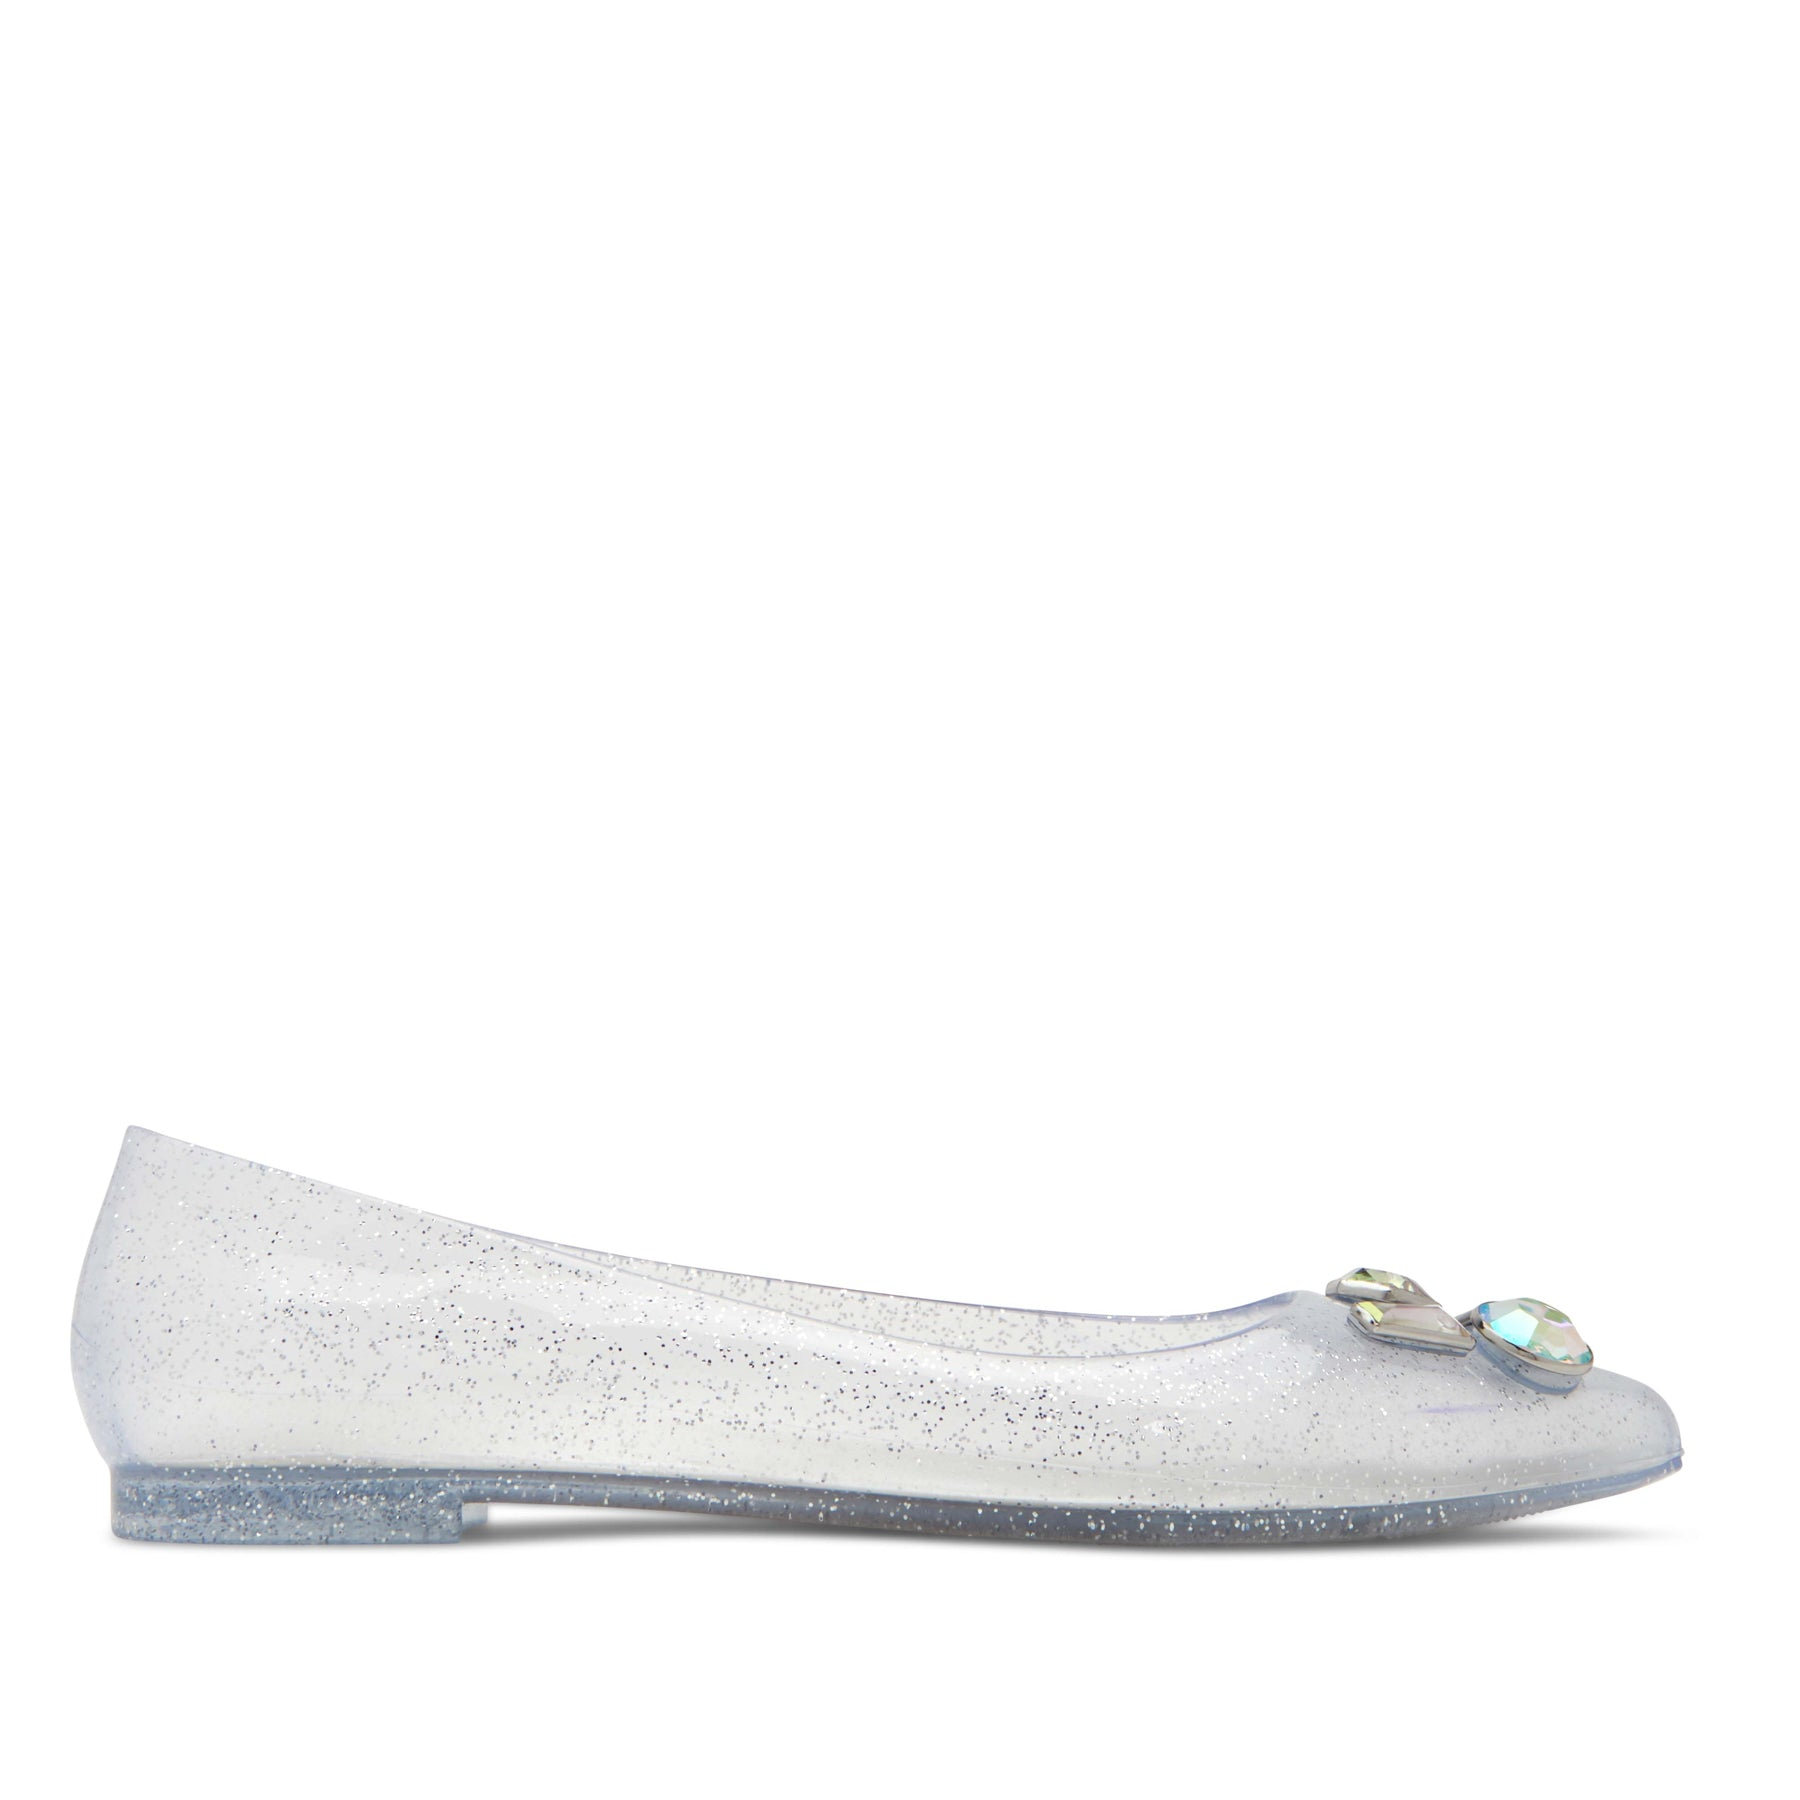 katy perry flat in clear/black size 5   the princess